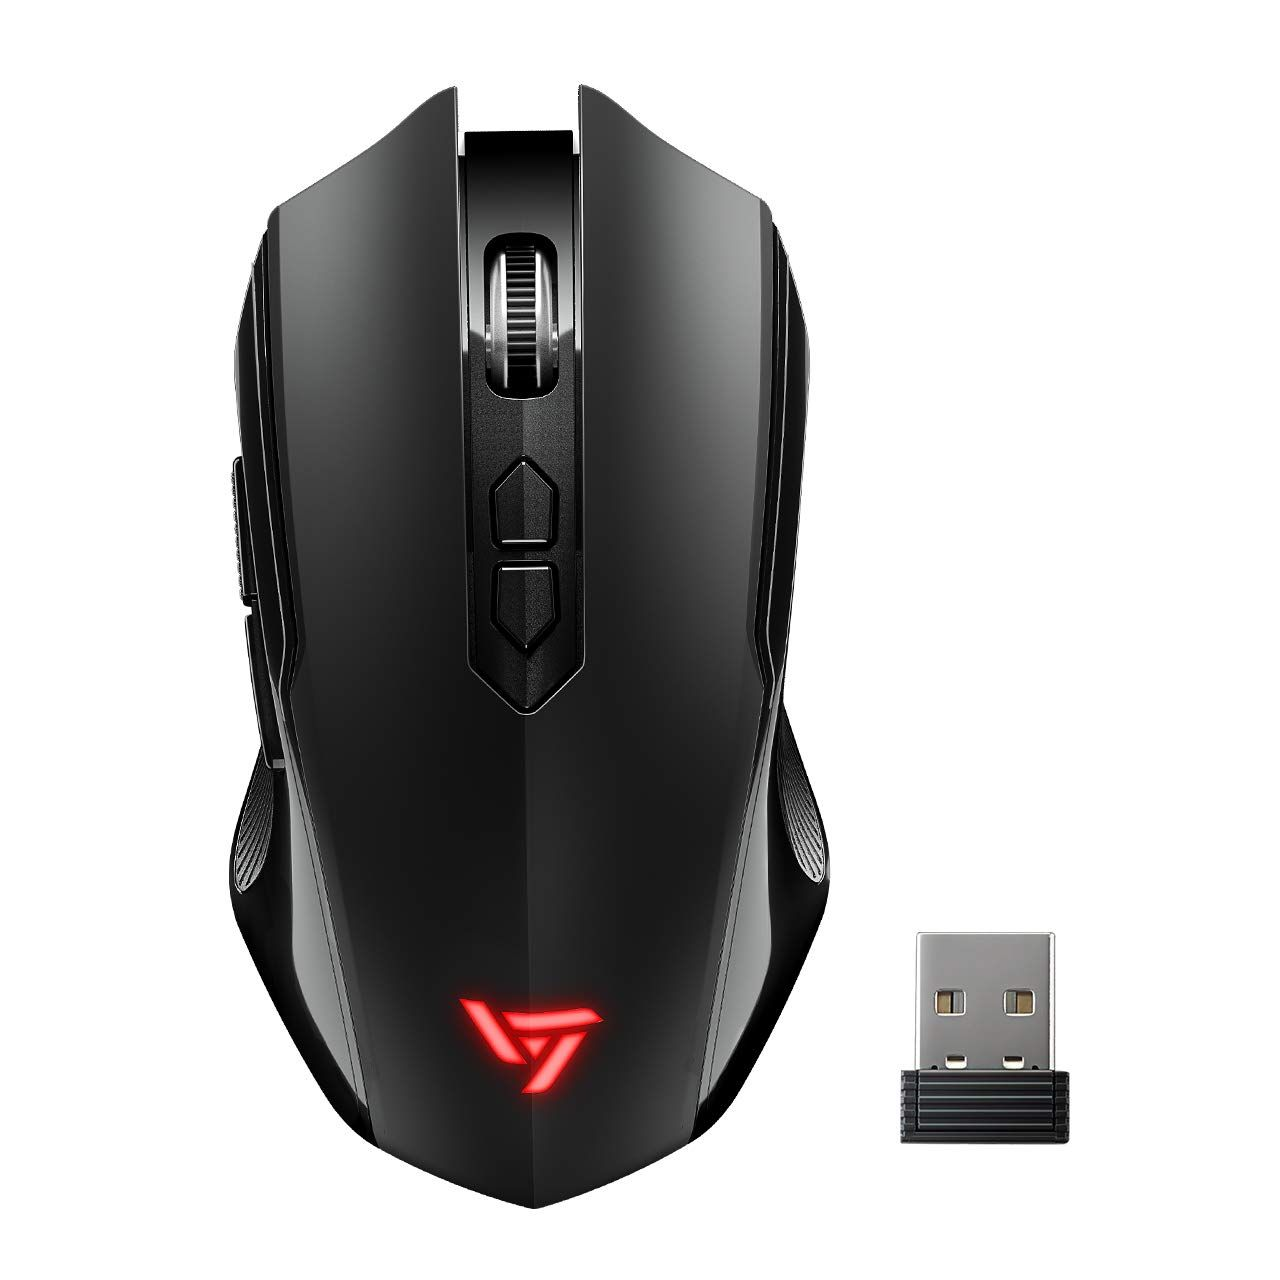 Victsing Wireless Gaming Mouse Unique Silent Click Portable